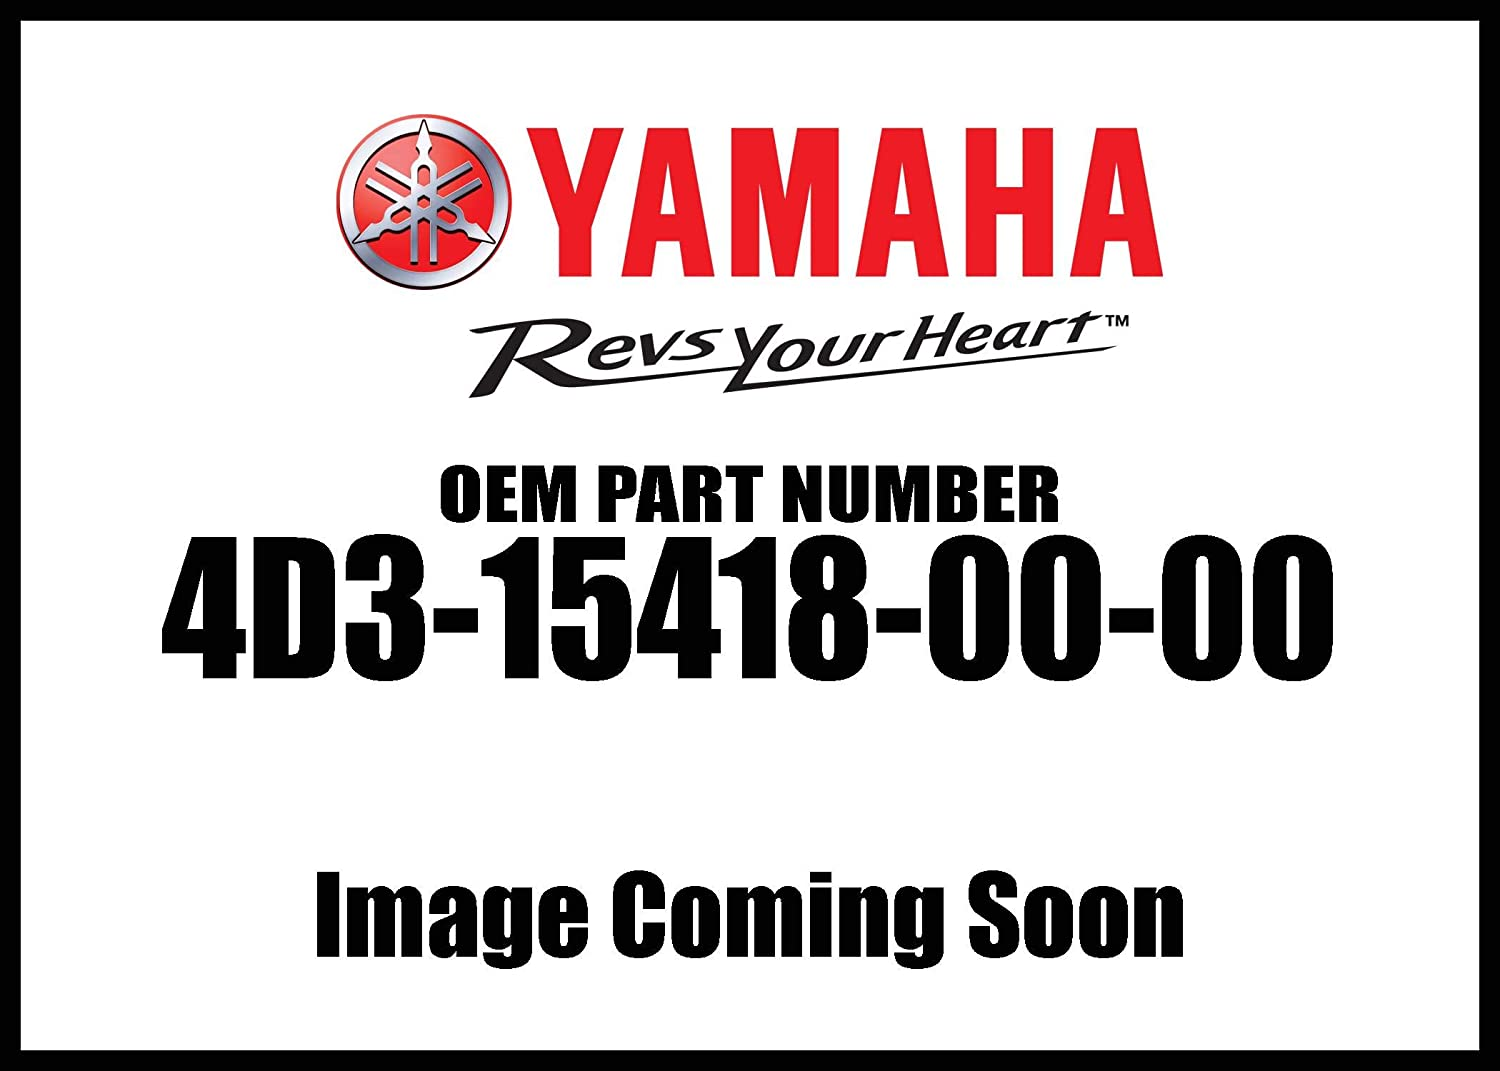 New Yamaha OEM 4D3-15418-00-00 COVER CHAIN CASE 4D3154180000